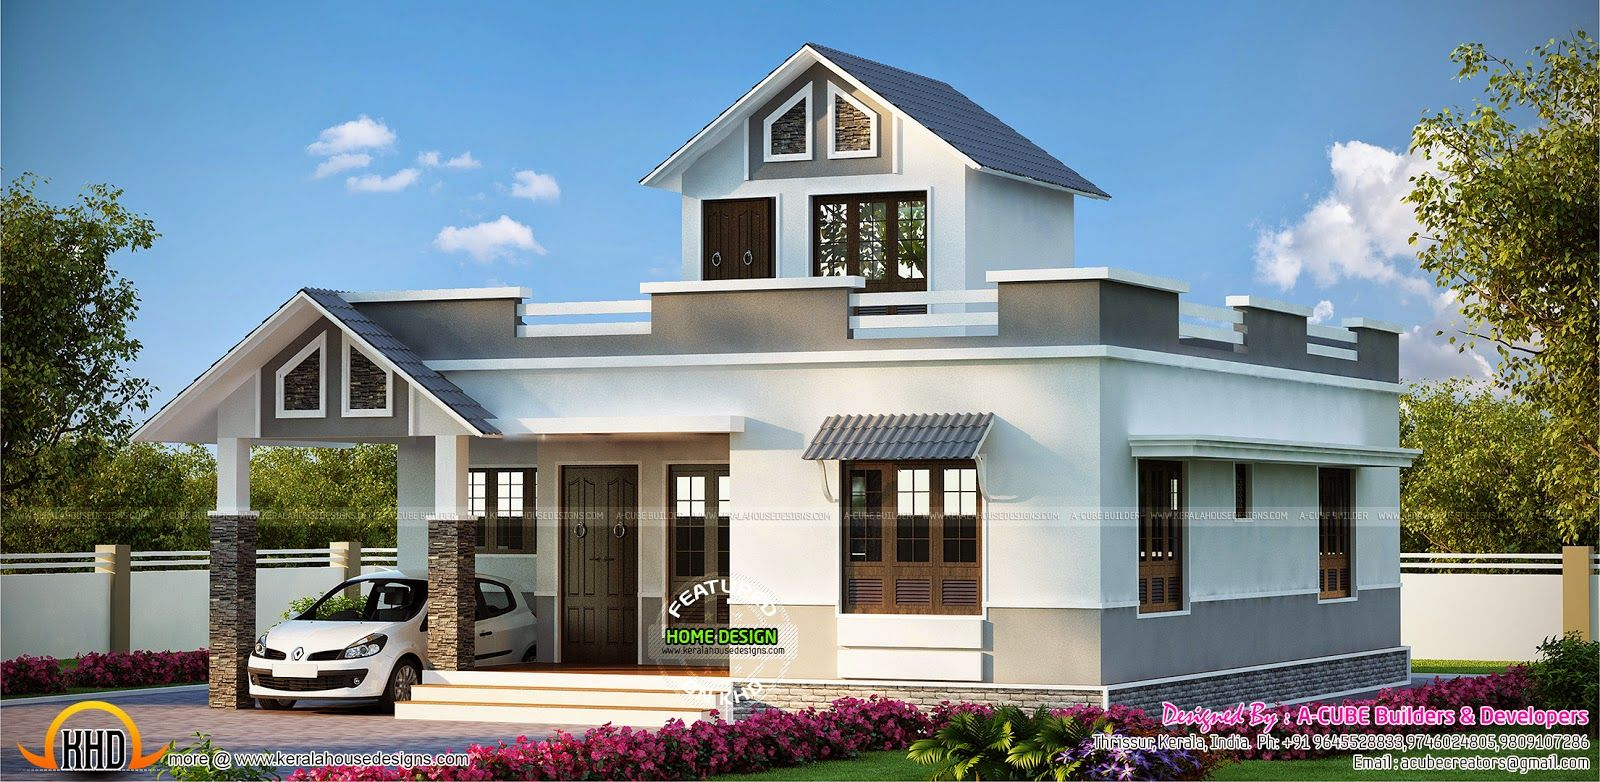 1188 Square Feet Mixed Roof House Kerala House Design House Roof Design 2bhk House Plan